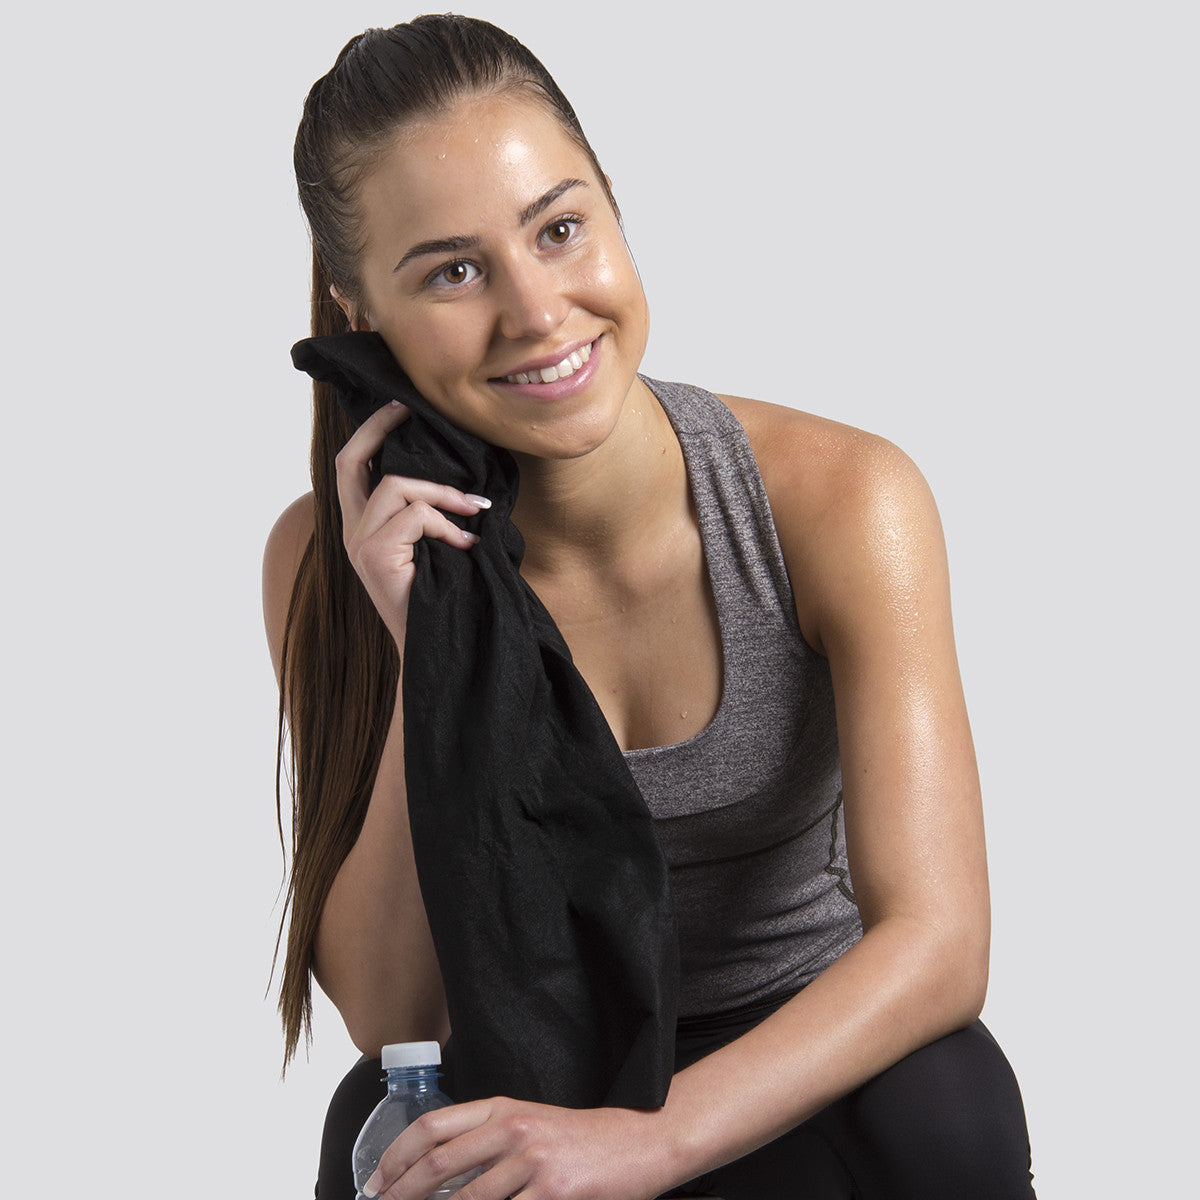 Envirodry Black Towels for the Gym, Sports & Leisure Industry - Carton of 600 towels